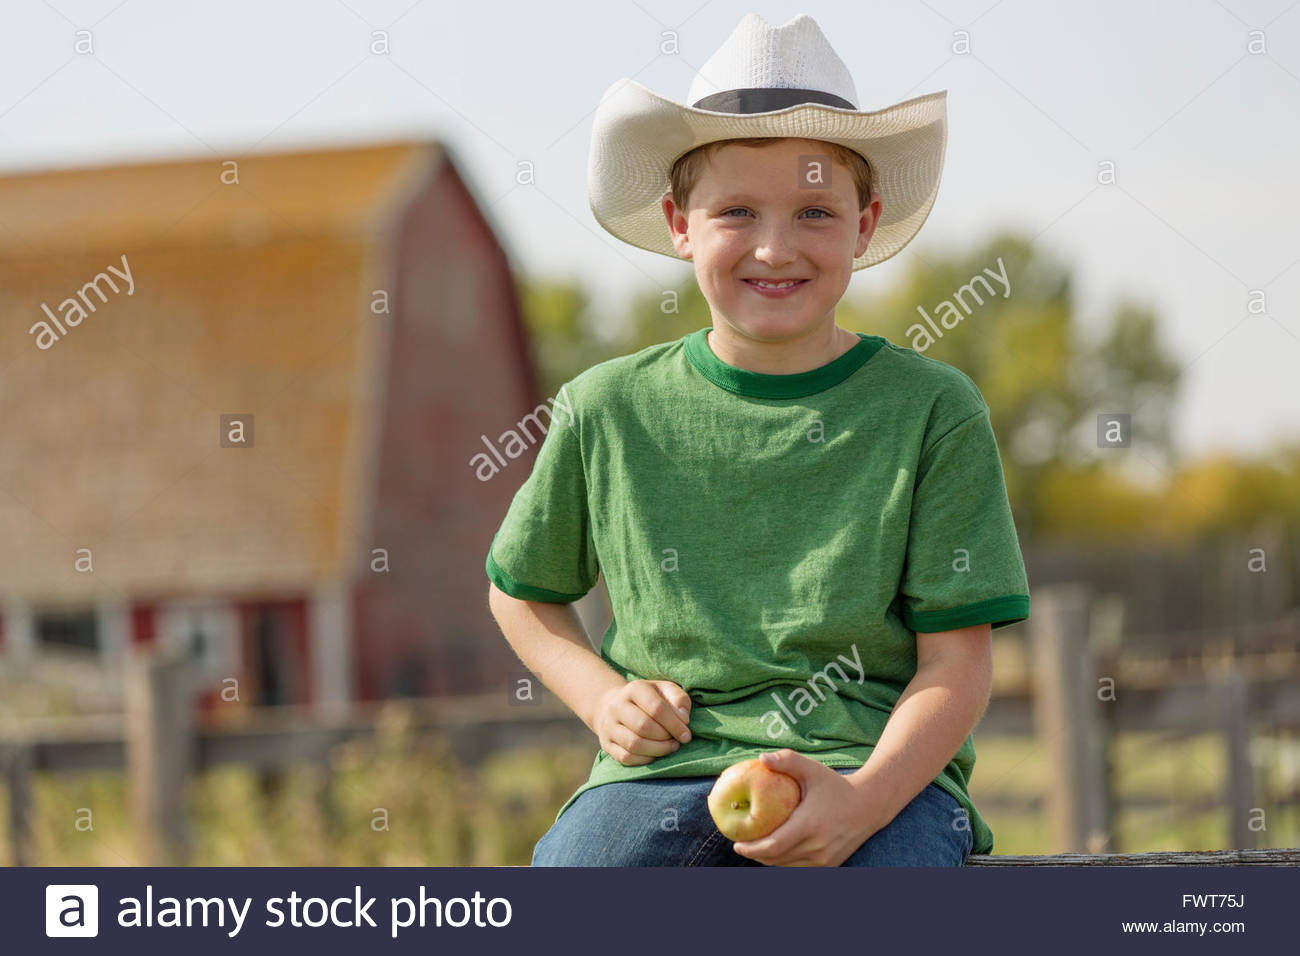 Young boy with cowboy hat sitting on fence. Stock Photo